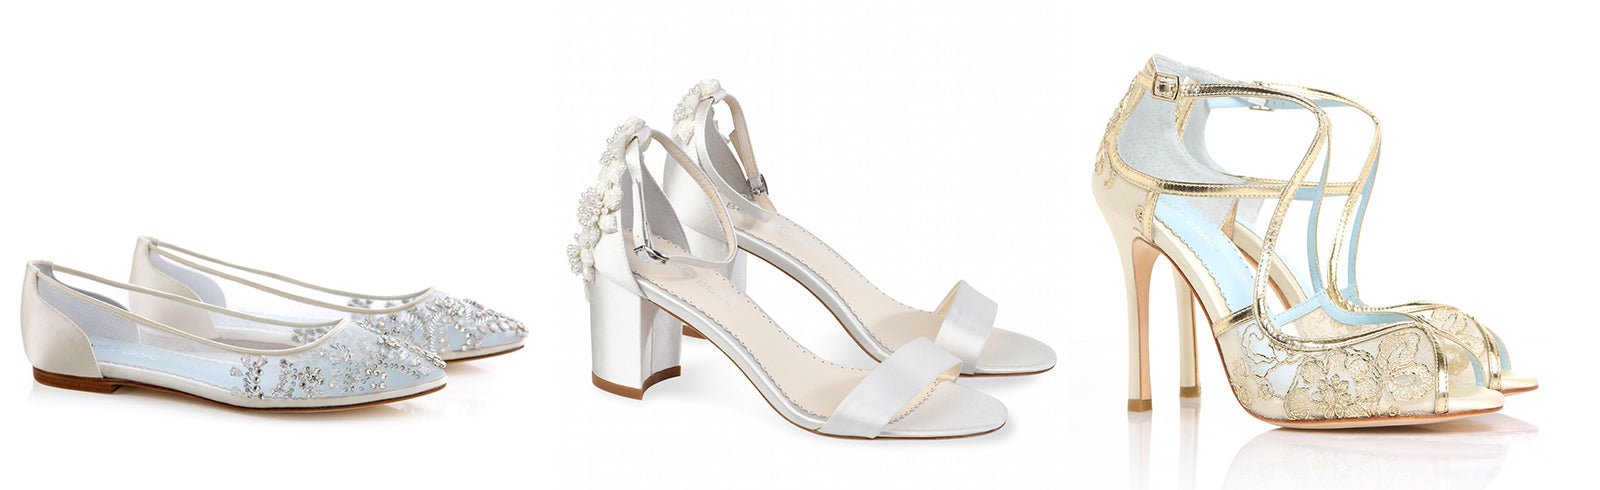 bella belle maggie sottero wedding dress designer wedding shoes